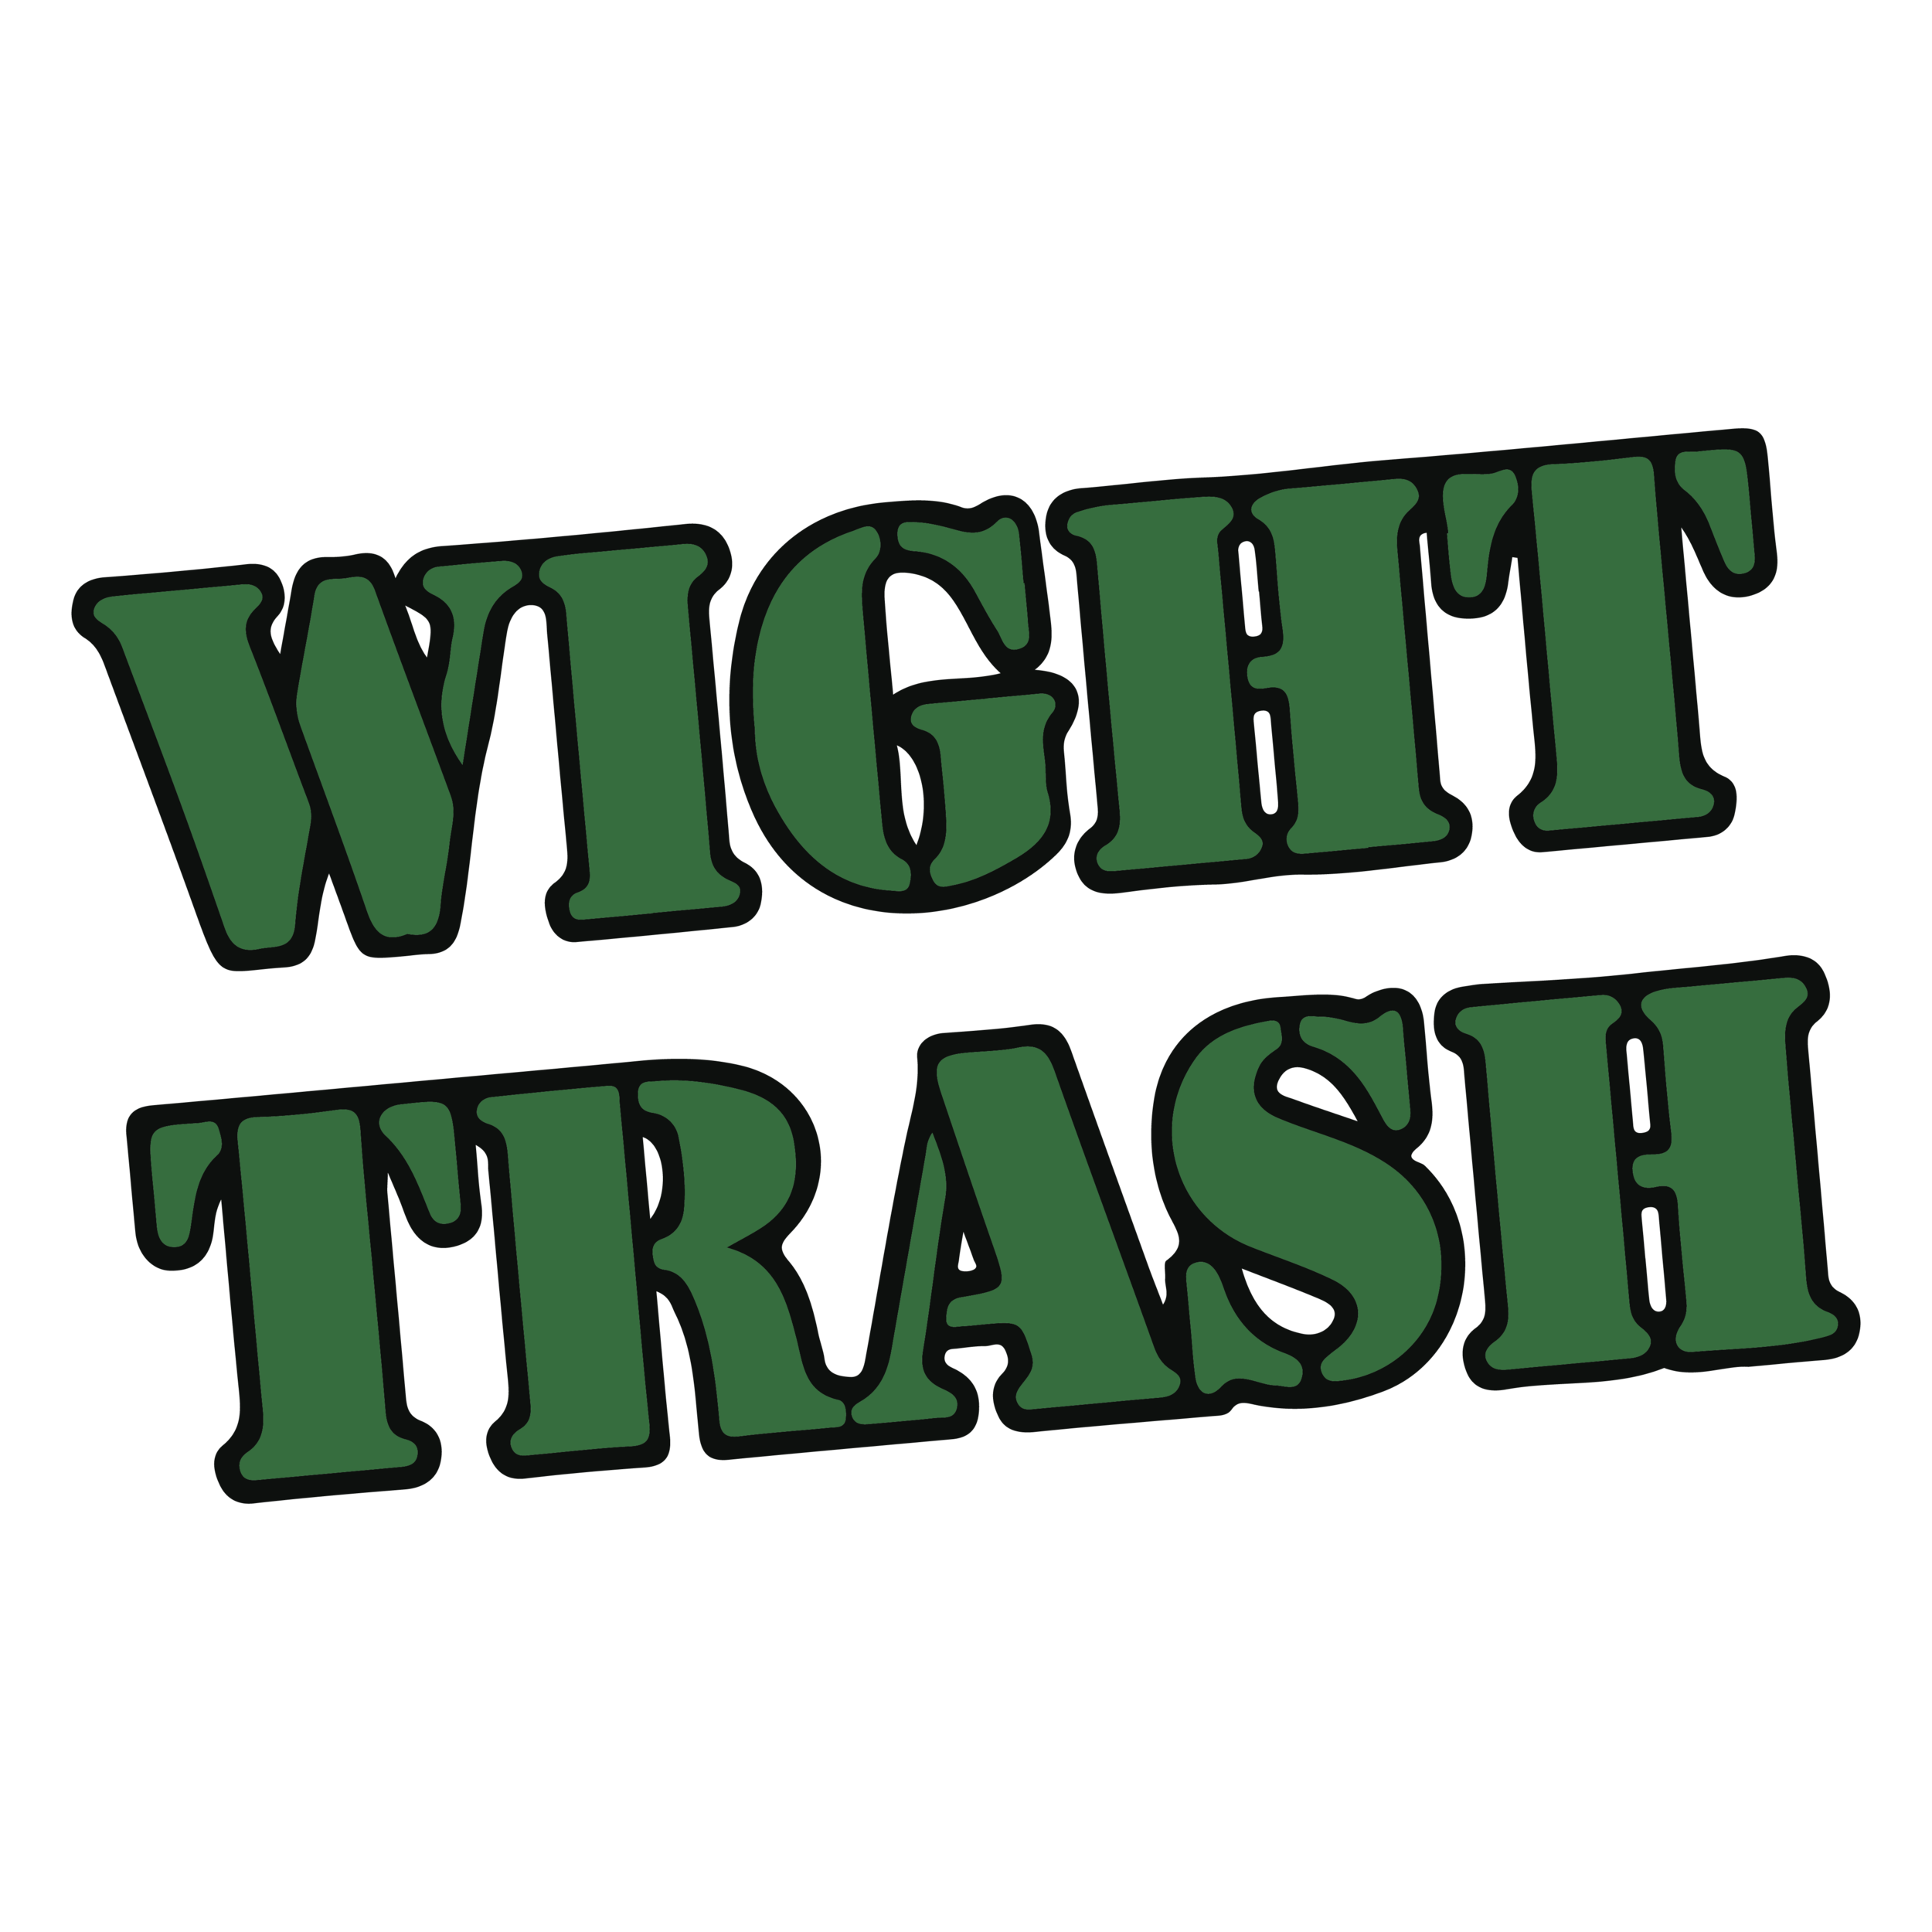 WIGHT TRASH-01.png